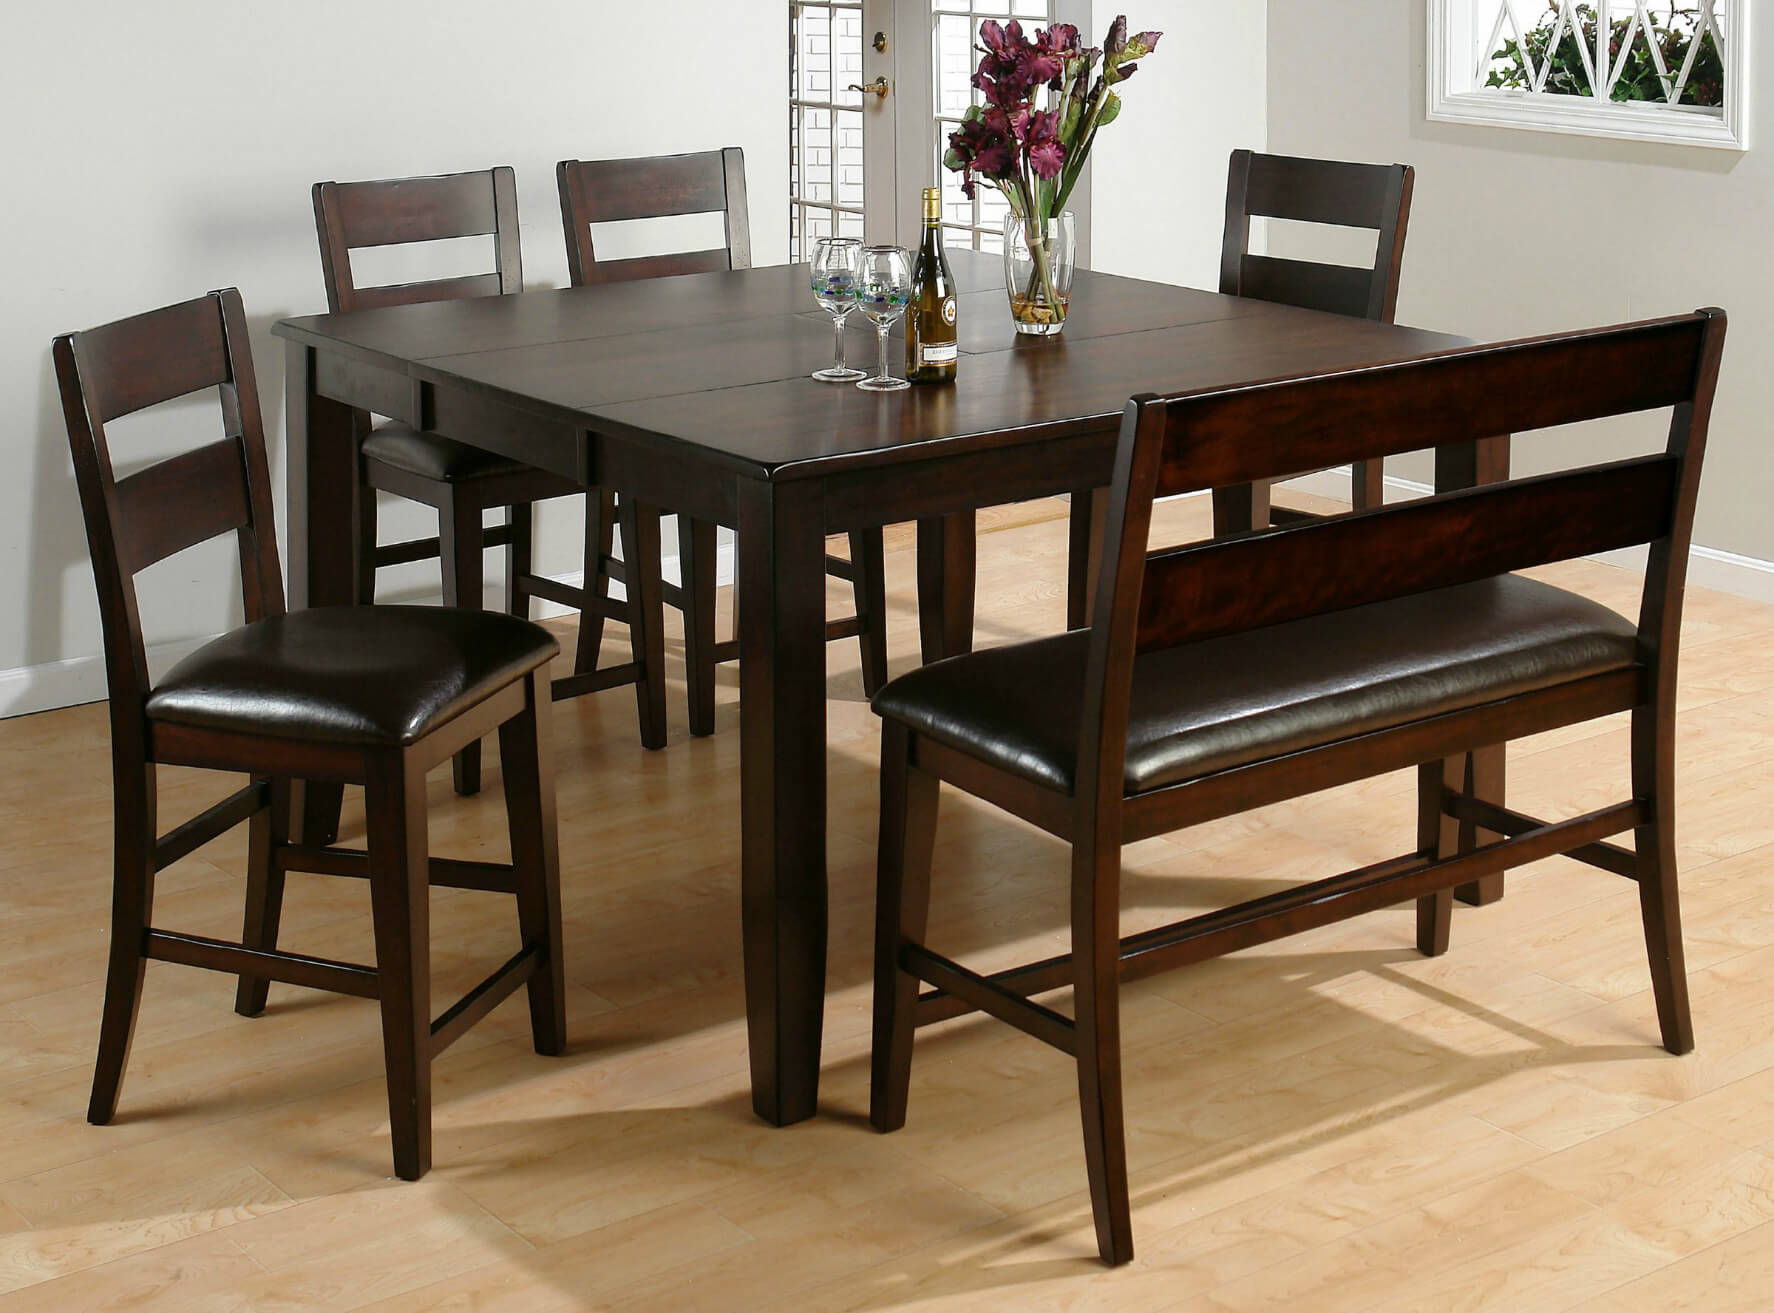 Tall Dining Room Sets Images Of Marvelous Decoration High Dining Room Table Sets High